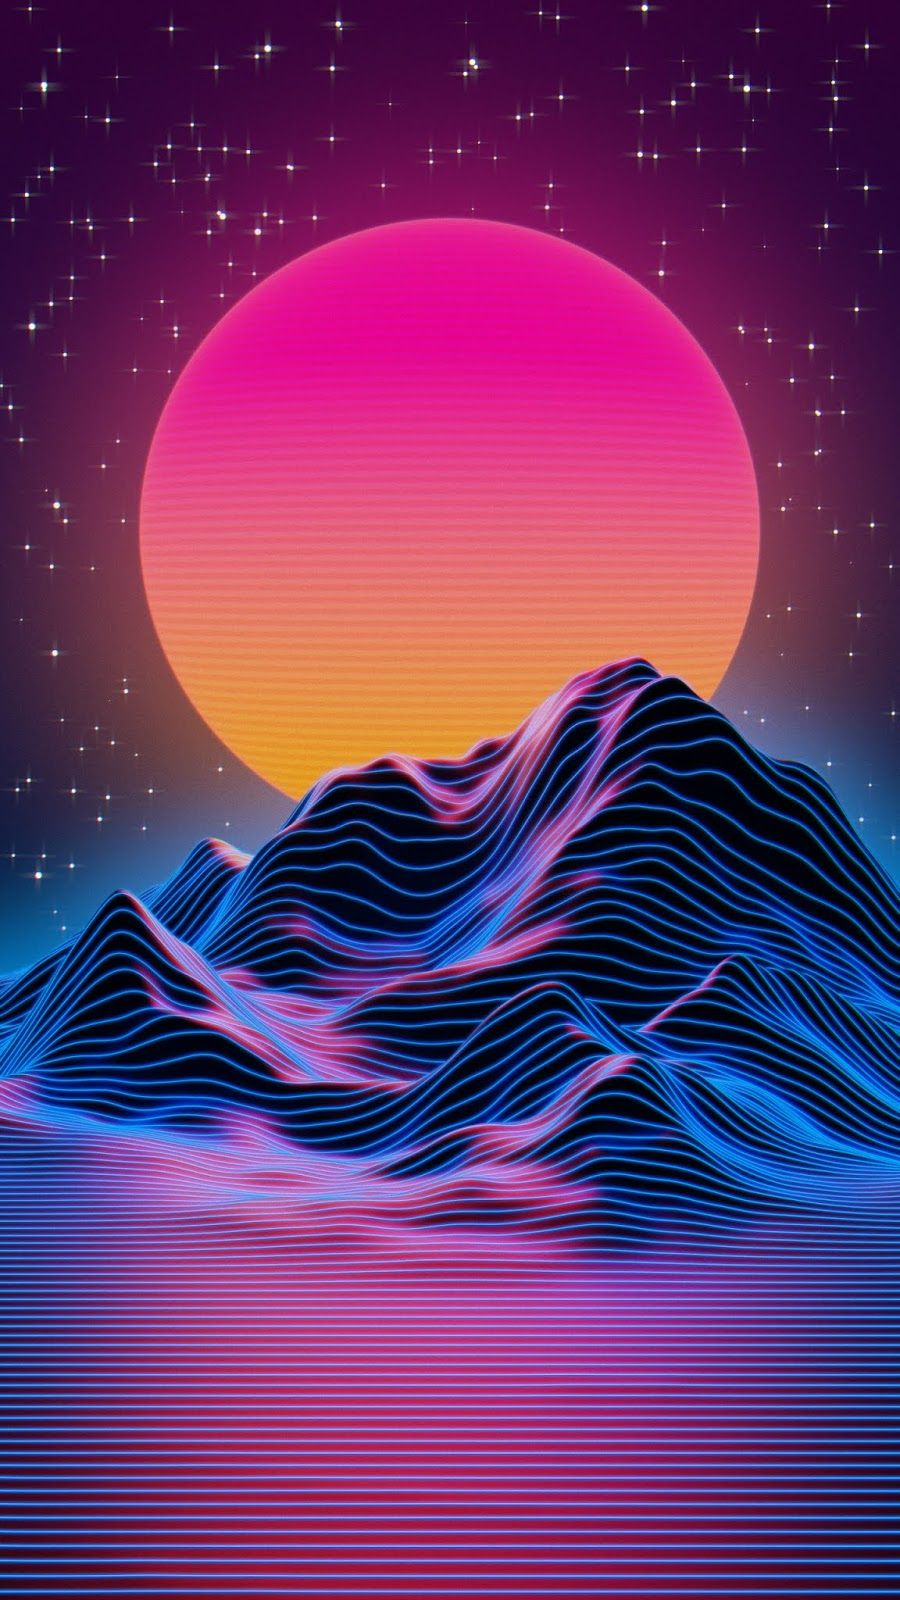 AESTHETIC VAPORWAVE PHONE WALLPAPER COLLECTION 192 in 2020